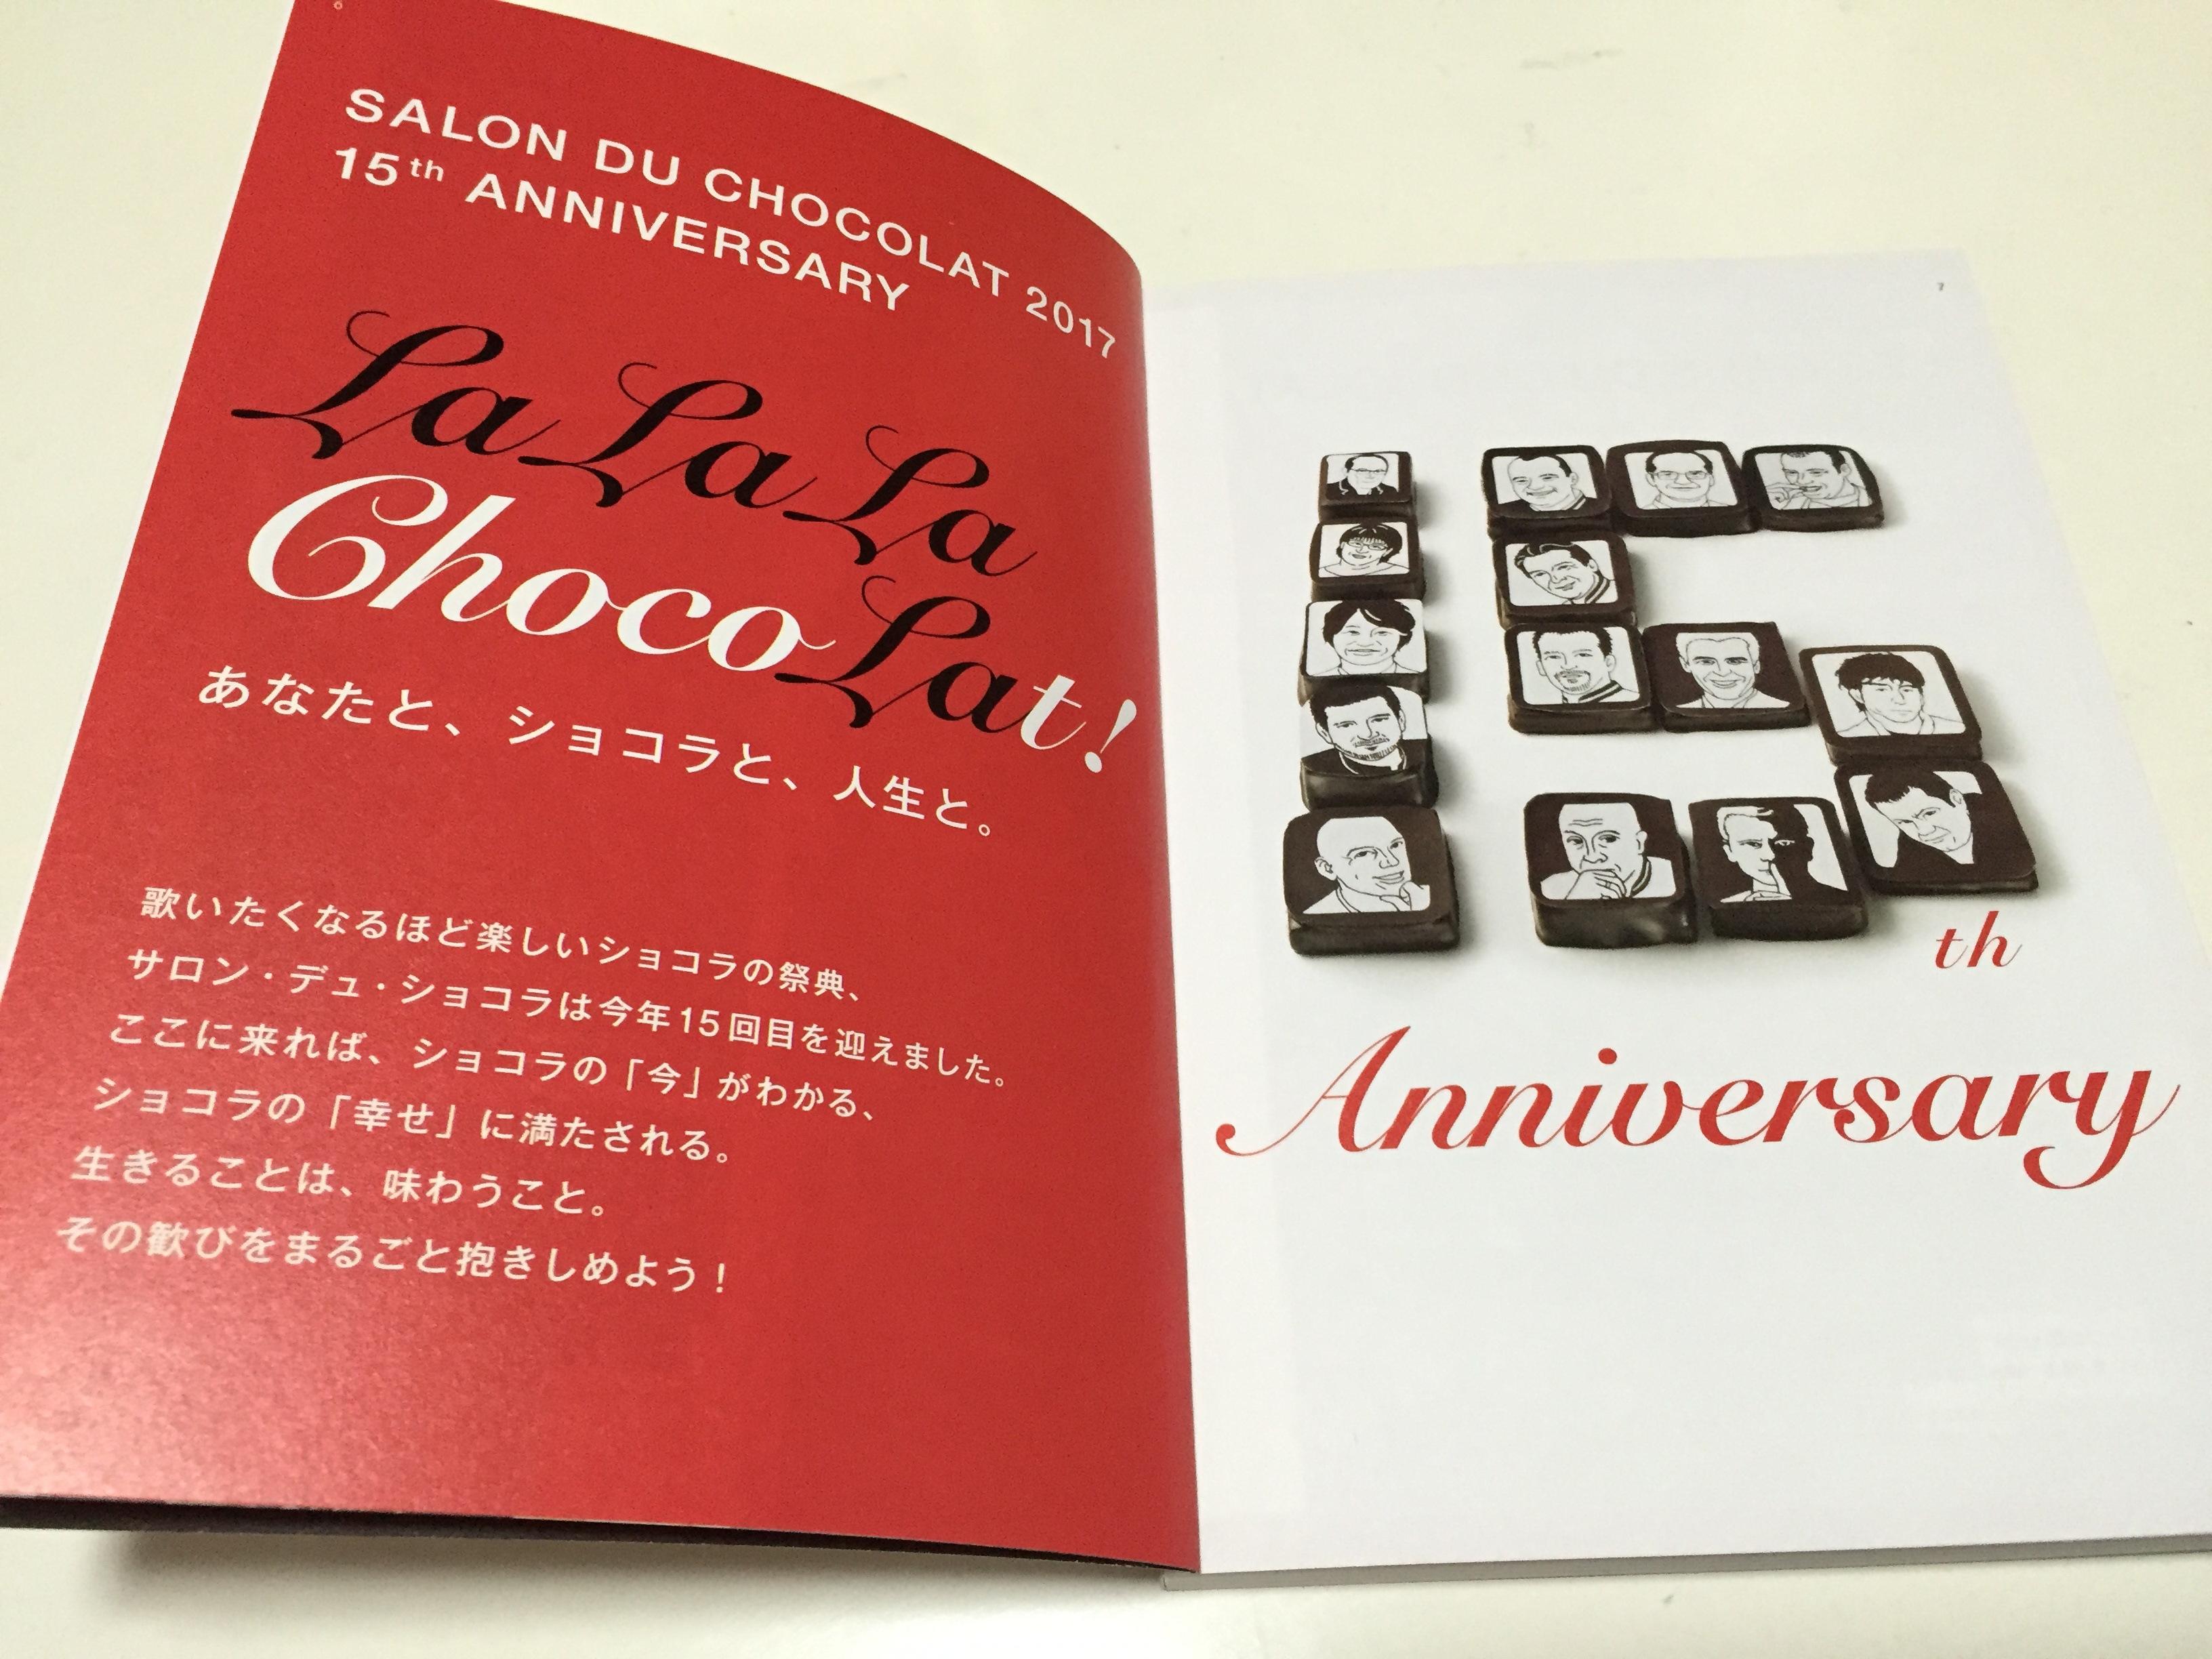 salonduchocolat2017catalog003